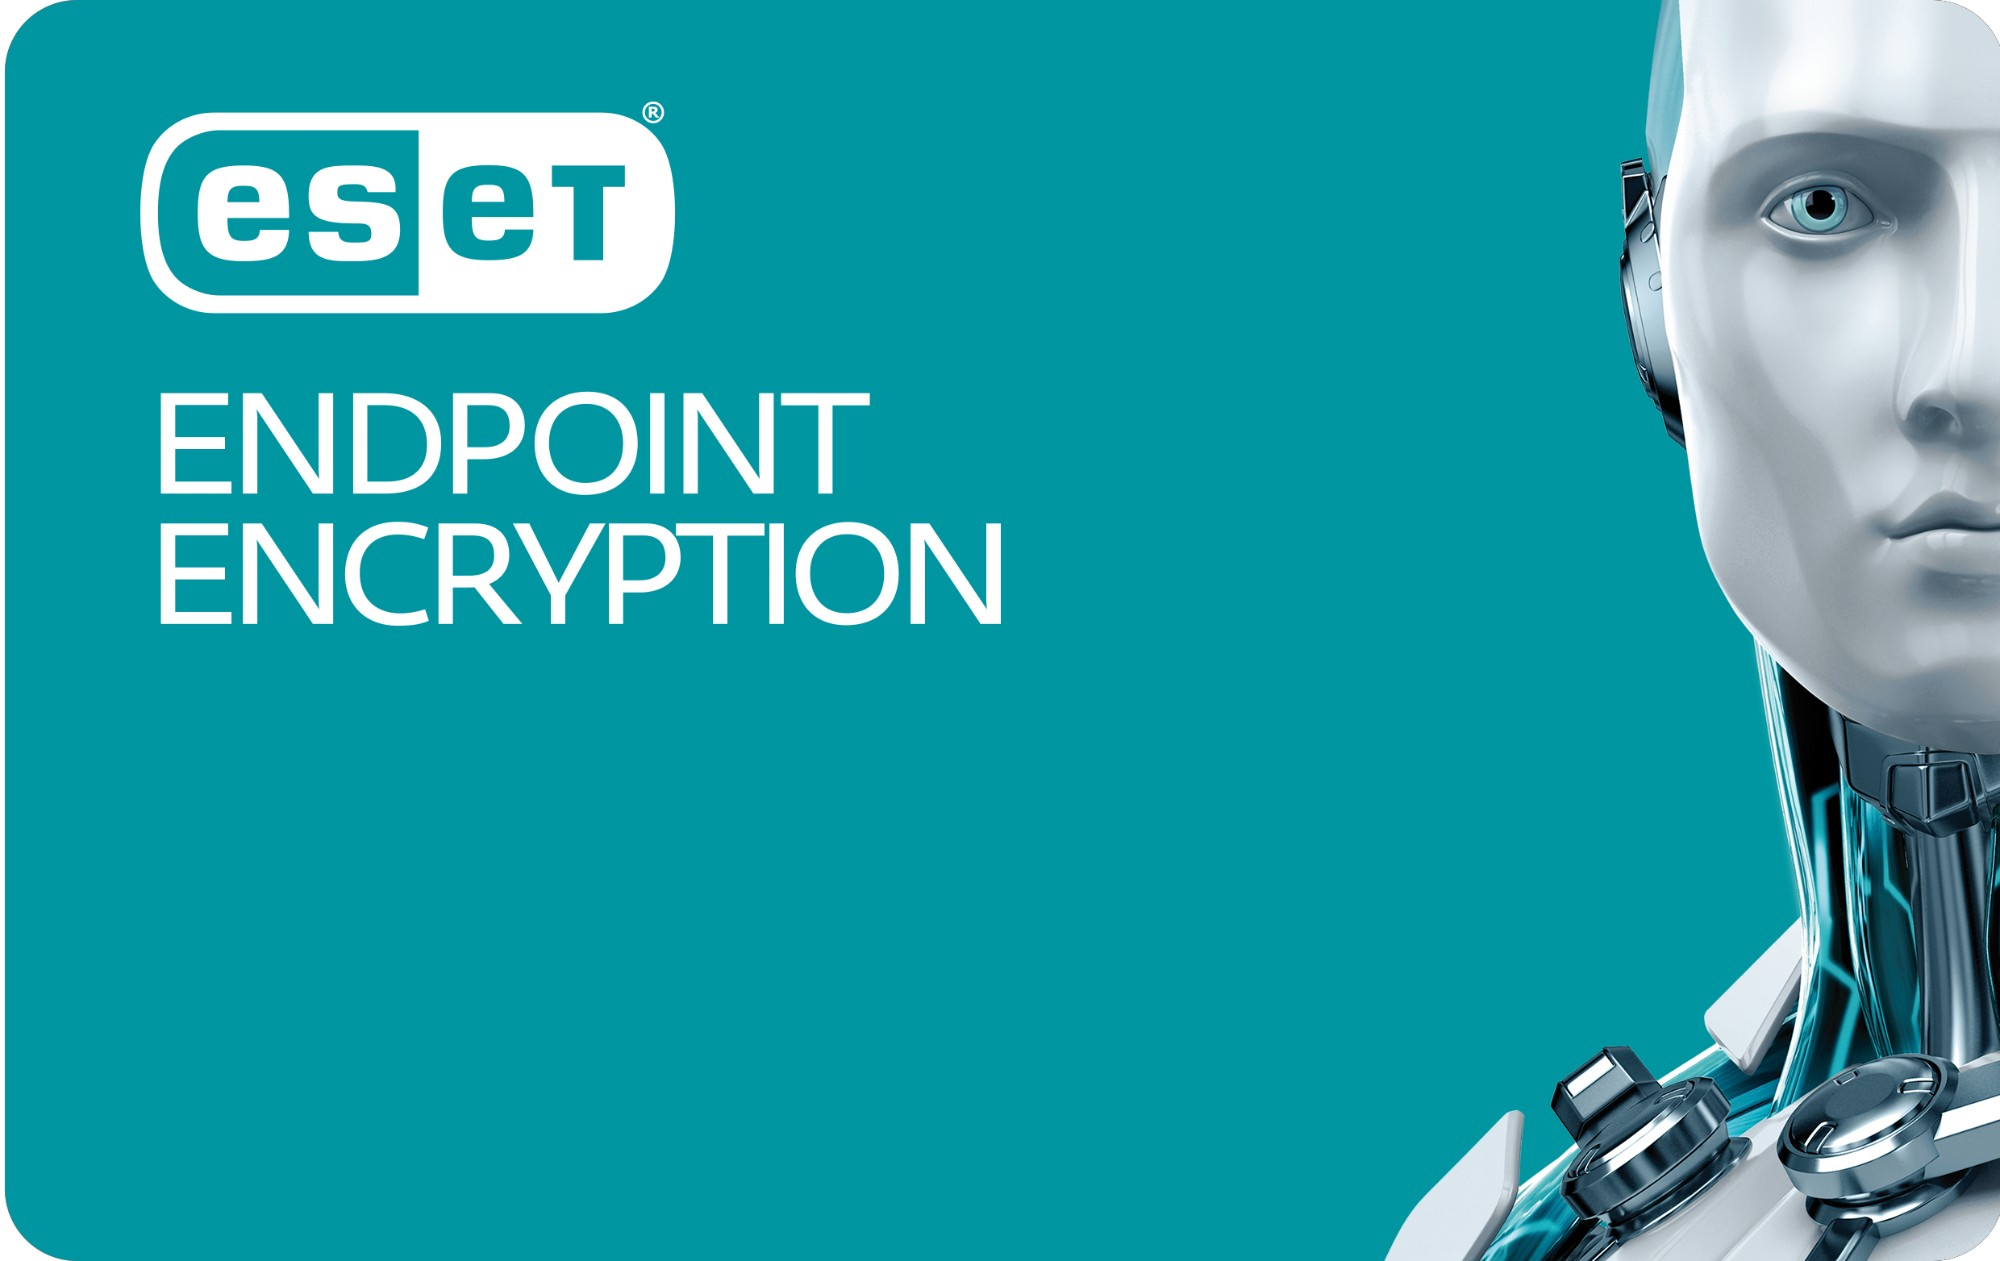 ESET Endpoint Encryption Pro 250 - 499 User Government (GOV) license 250 - 499 license(s) 2 year(s)